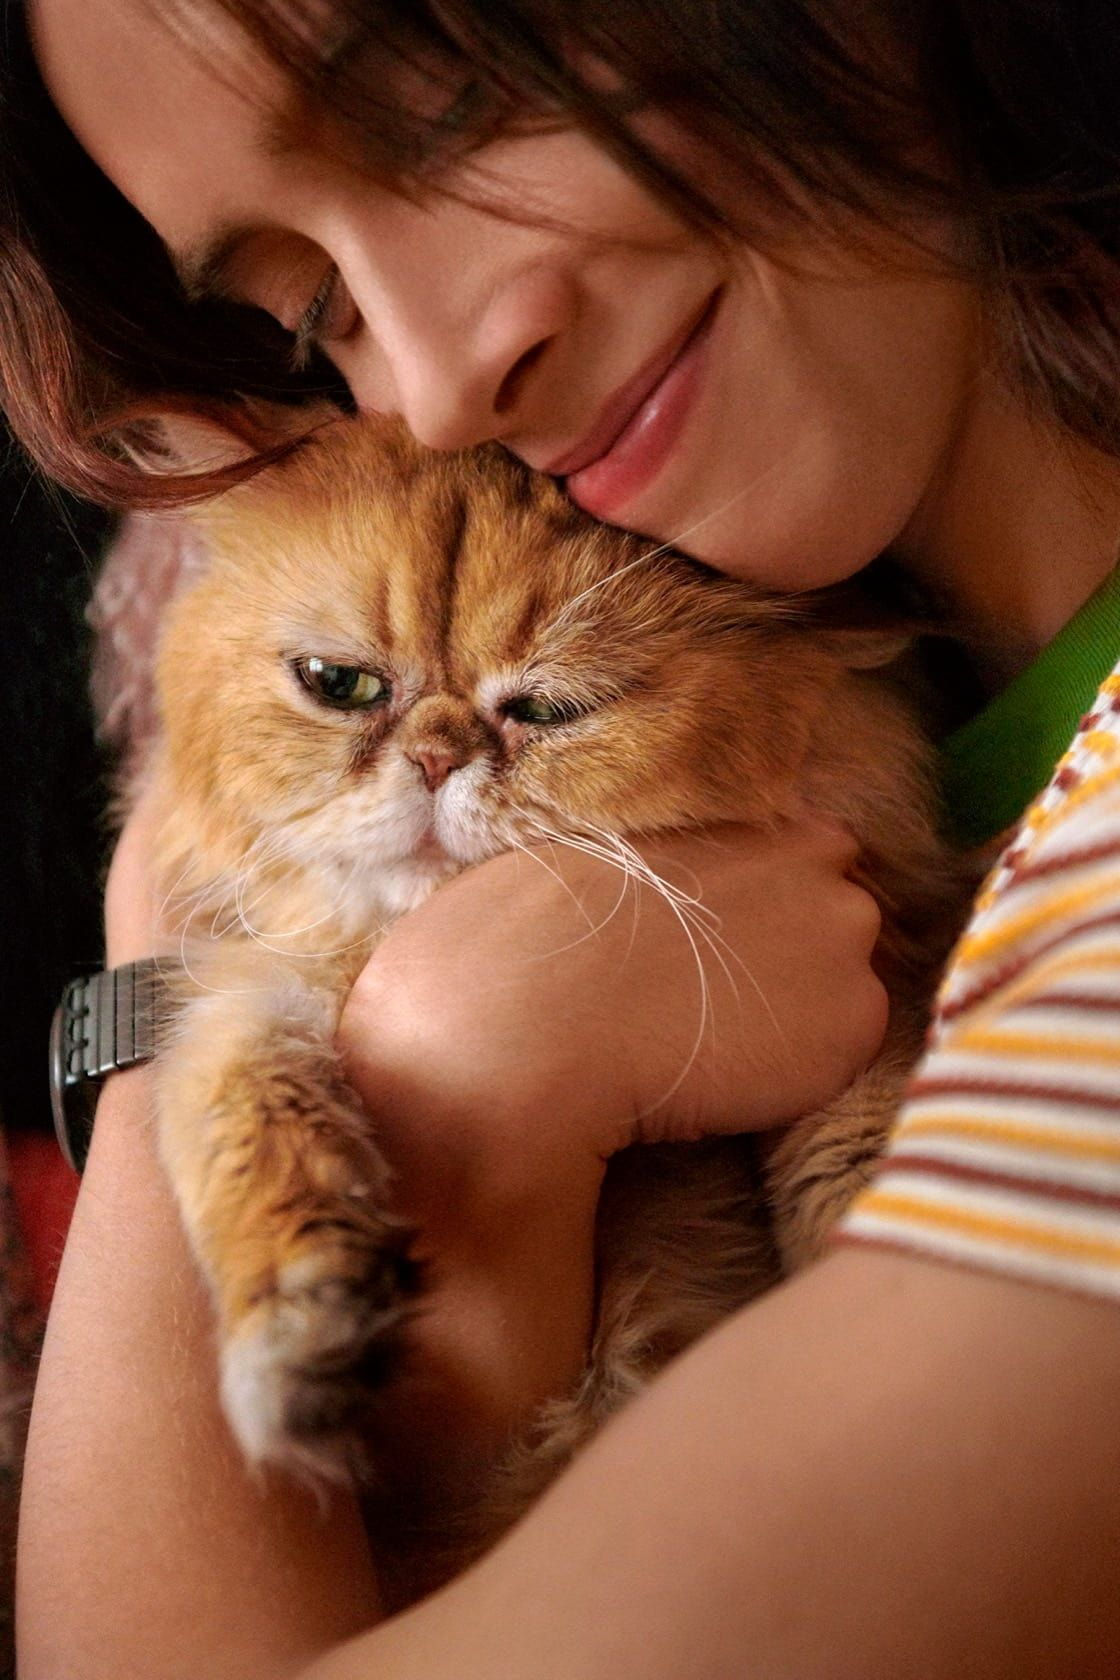 Man with long hair smiling and hugging his fluffy orange cat